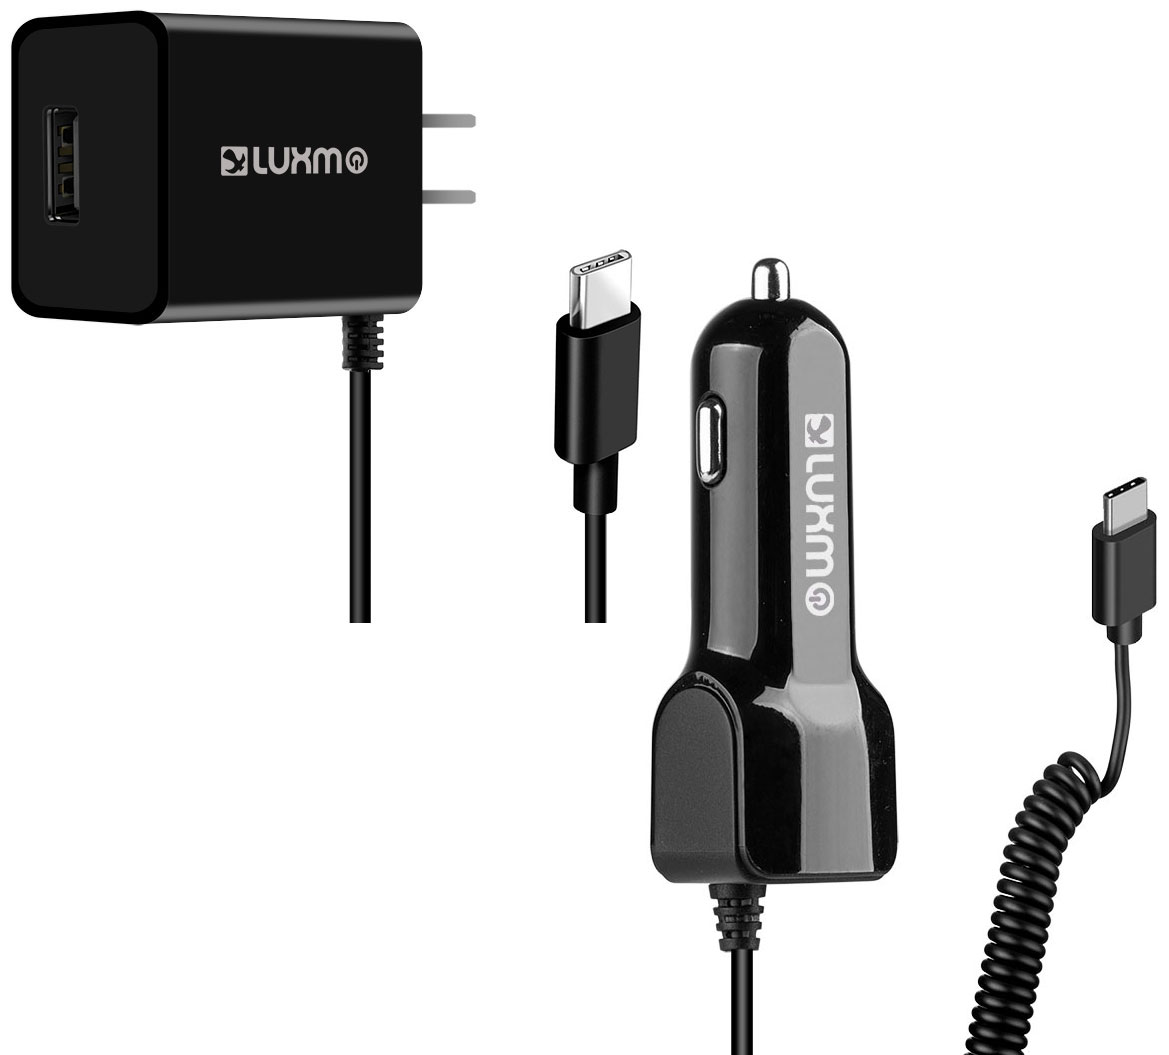 LG Stylo 4 USB Type-C Car Home Charger Pack Extra USB Black